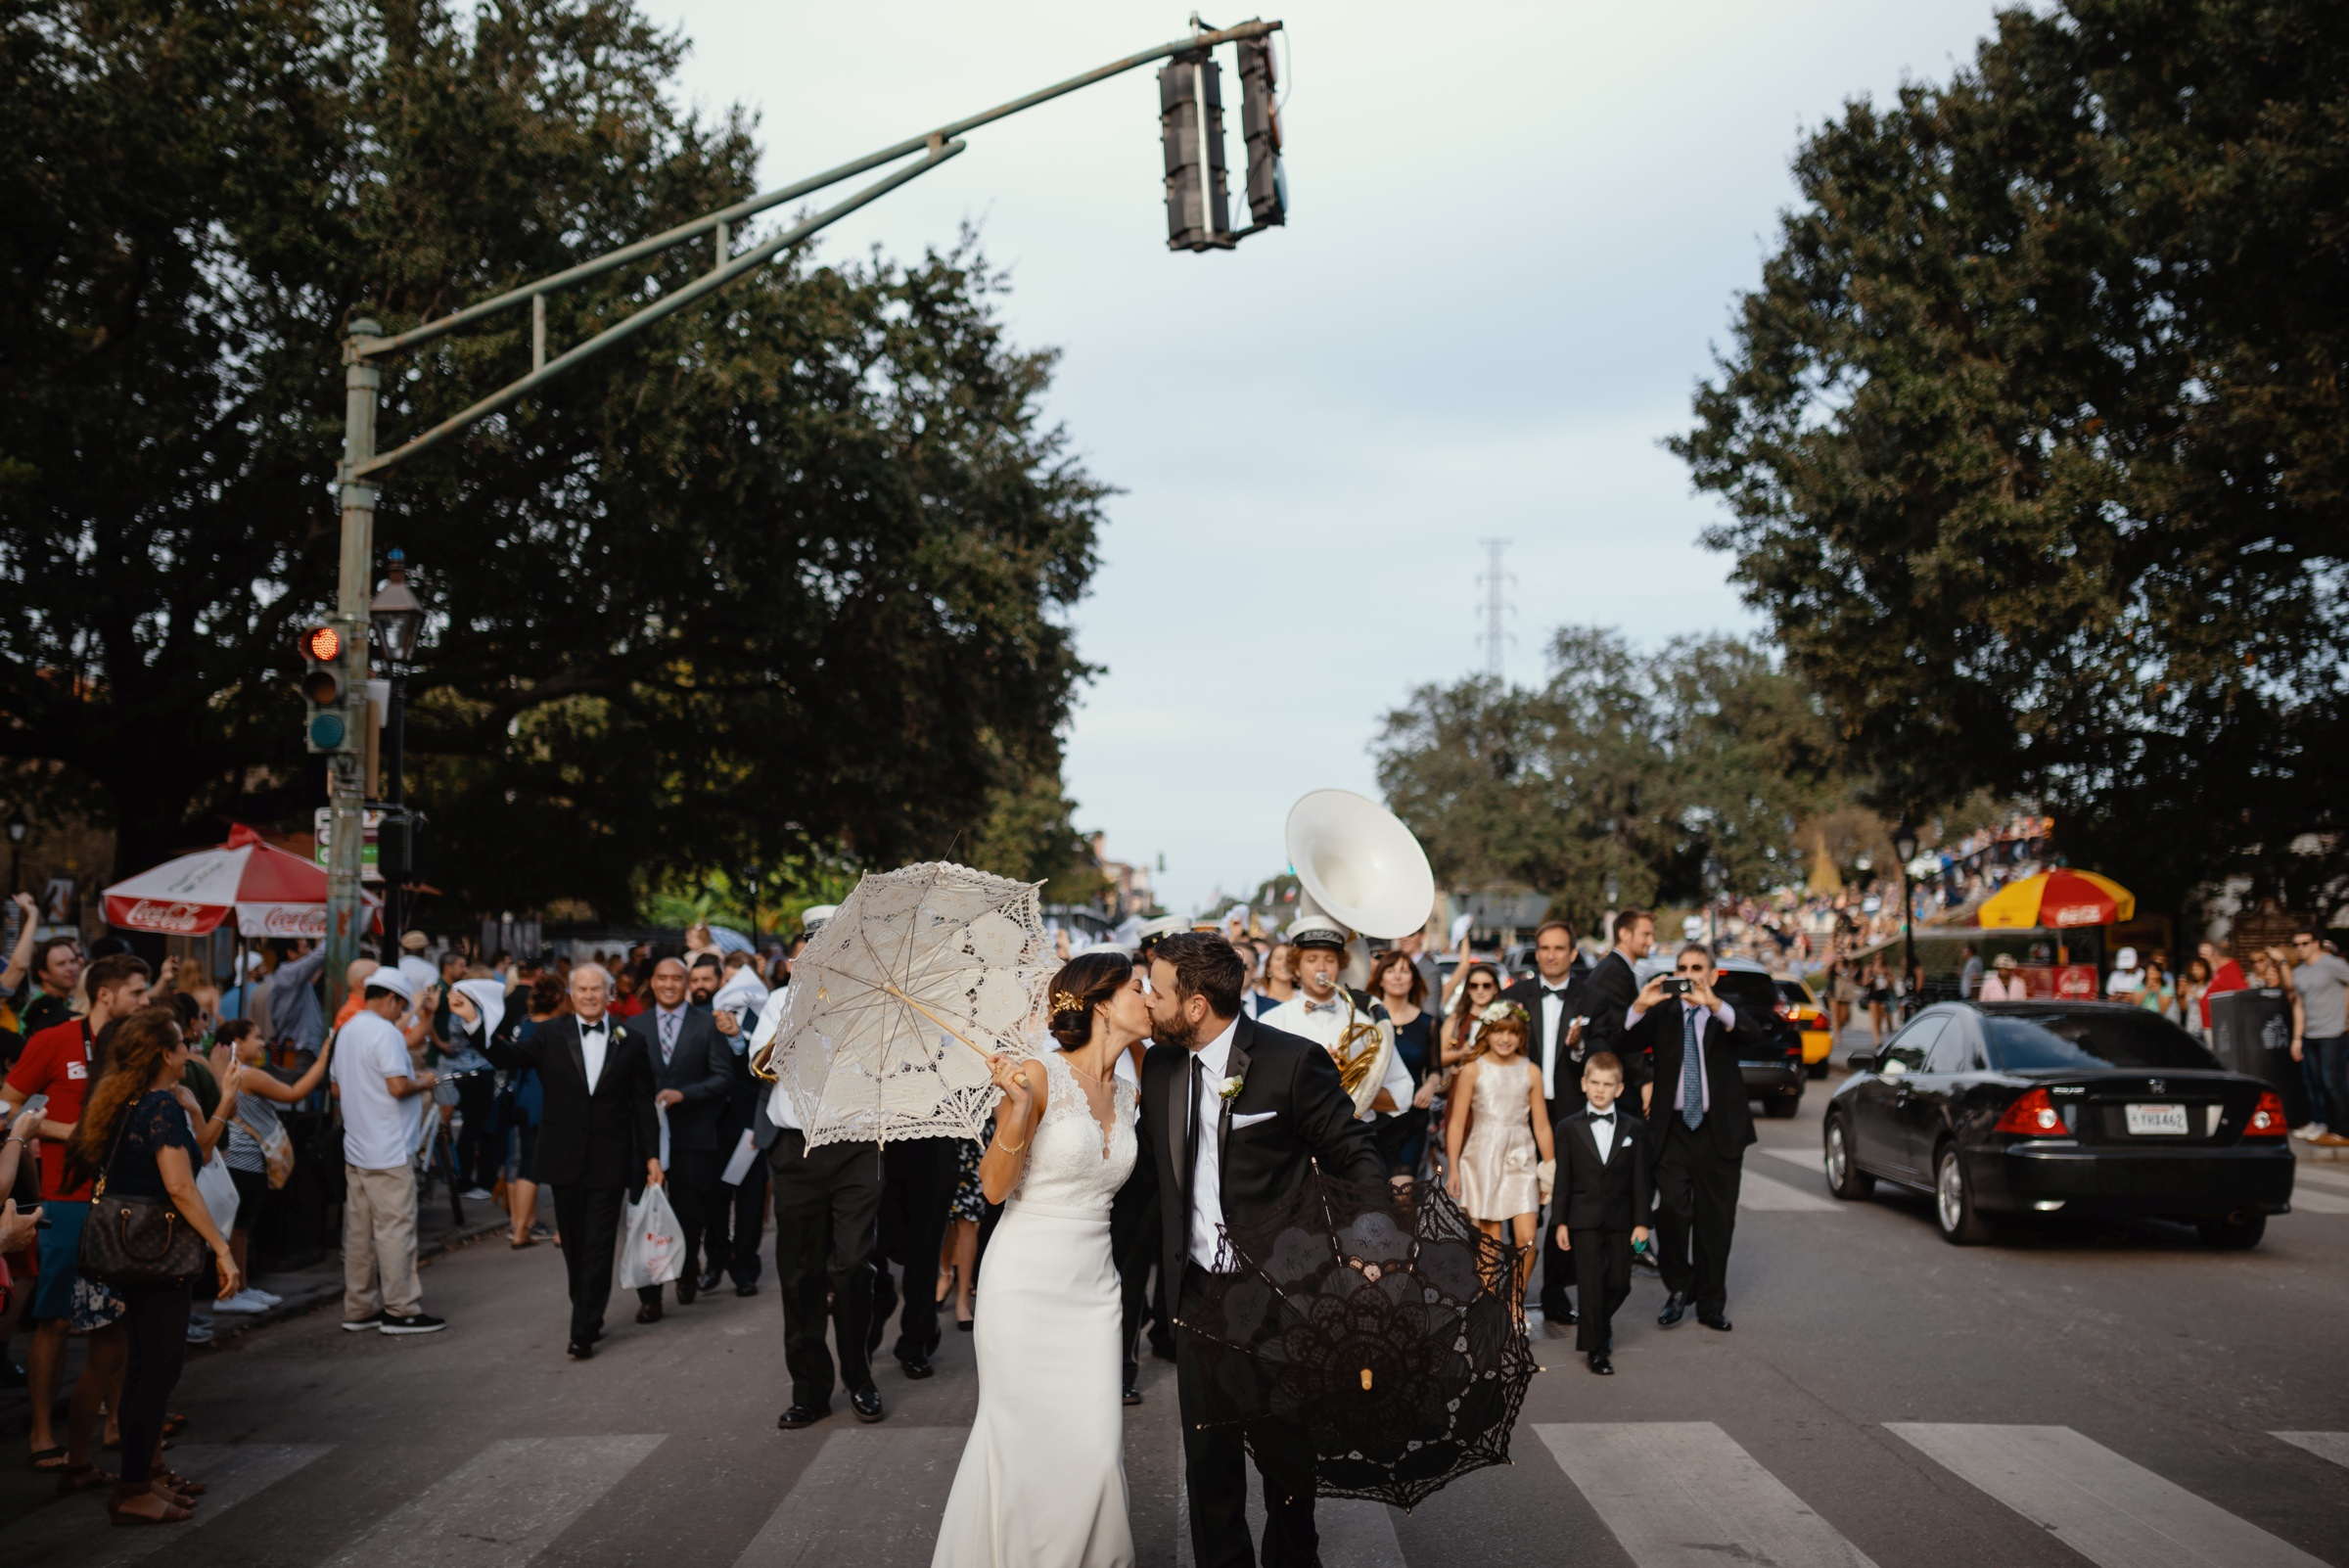 bride and groom wedding parade among the tourists in new orleans-austin-houston-wedding- photo by Dark Roux